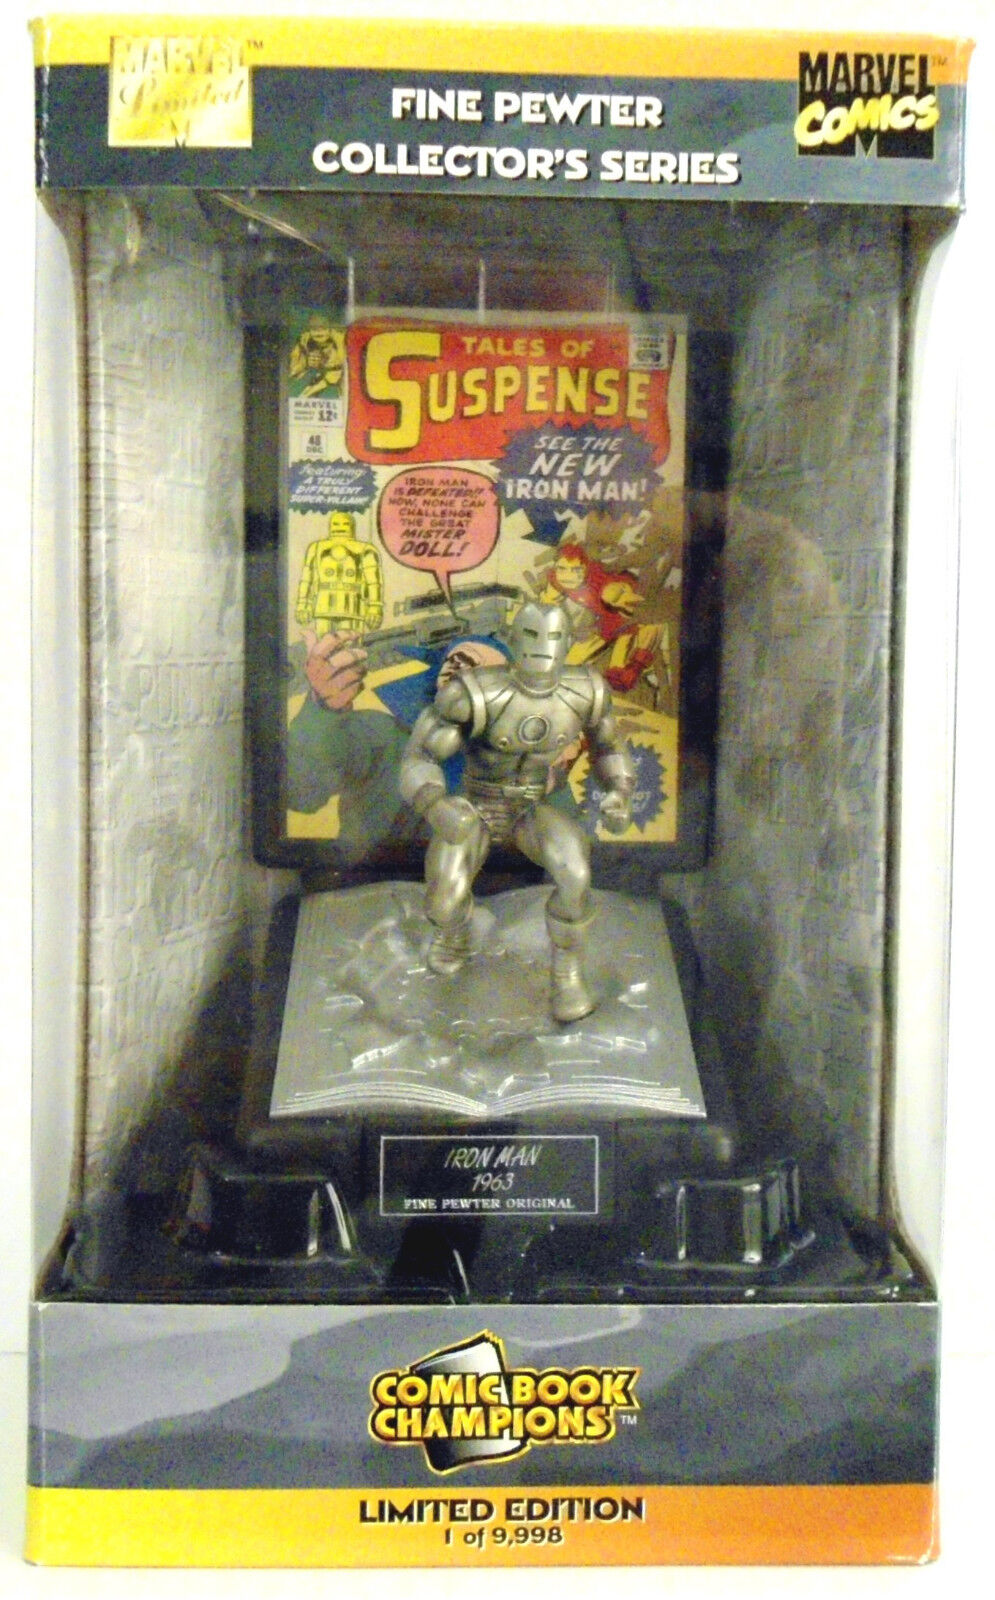 IRON MAN Limited Edition Pewter Figure by Comic Book Champions, 1998.